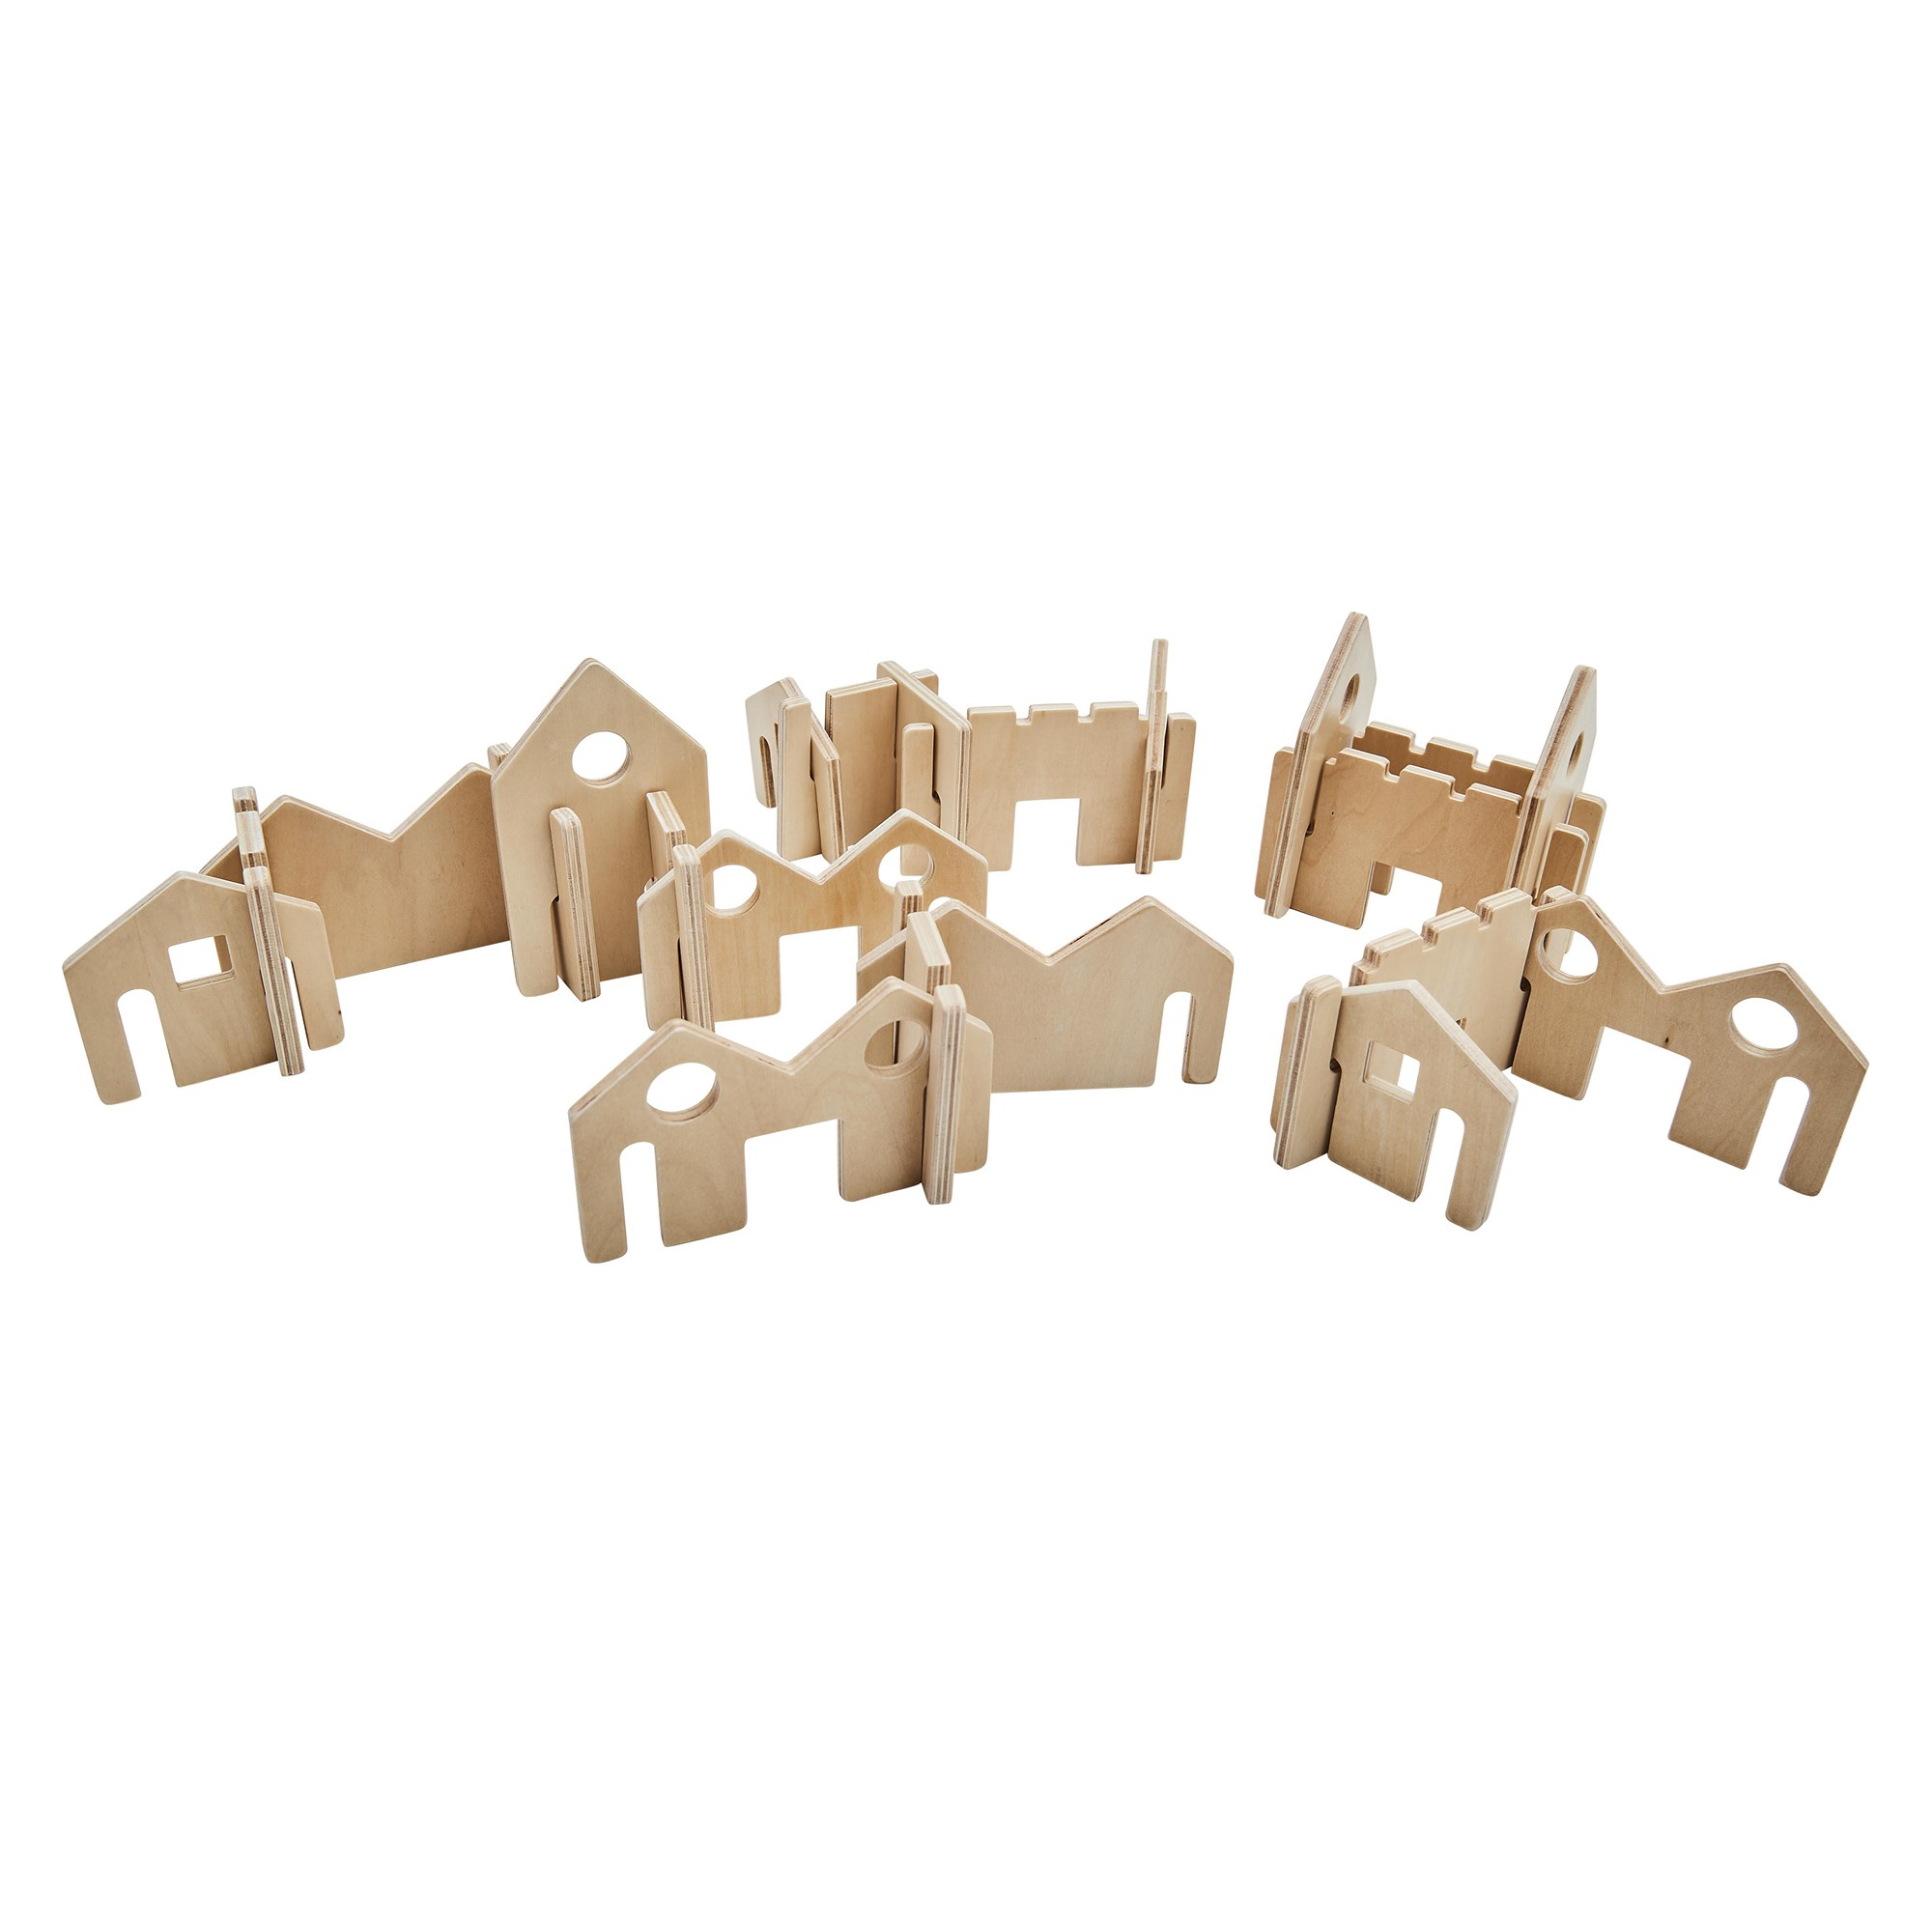 The Little Architect - Pack of 22